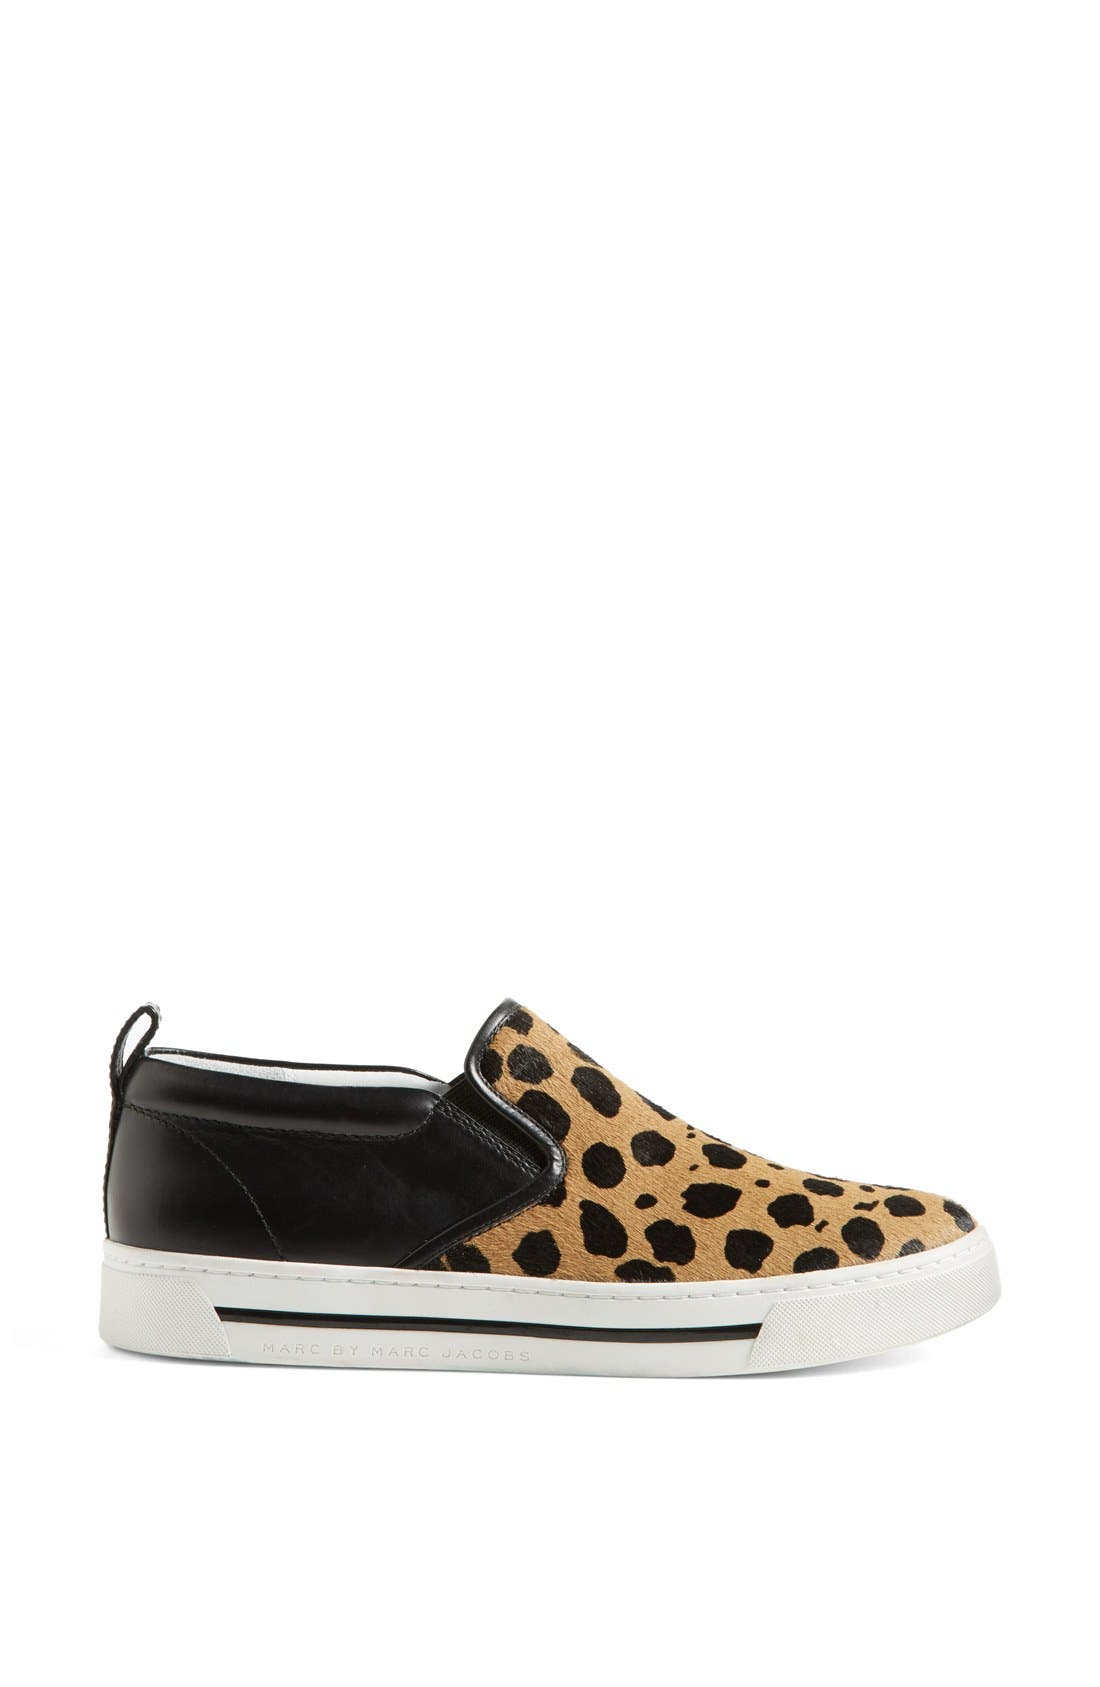 MARC BY MARC JACOBS Leather & Calf Hair Slip-On Sneaker,                             Alternate thumbnail 3, color,